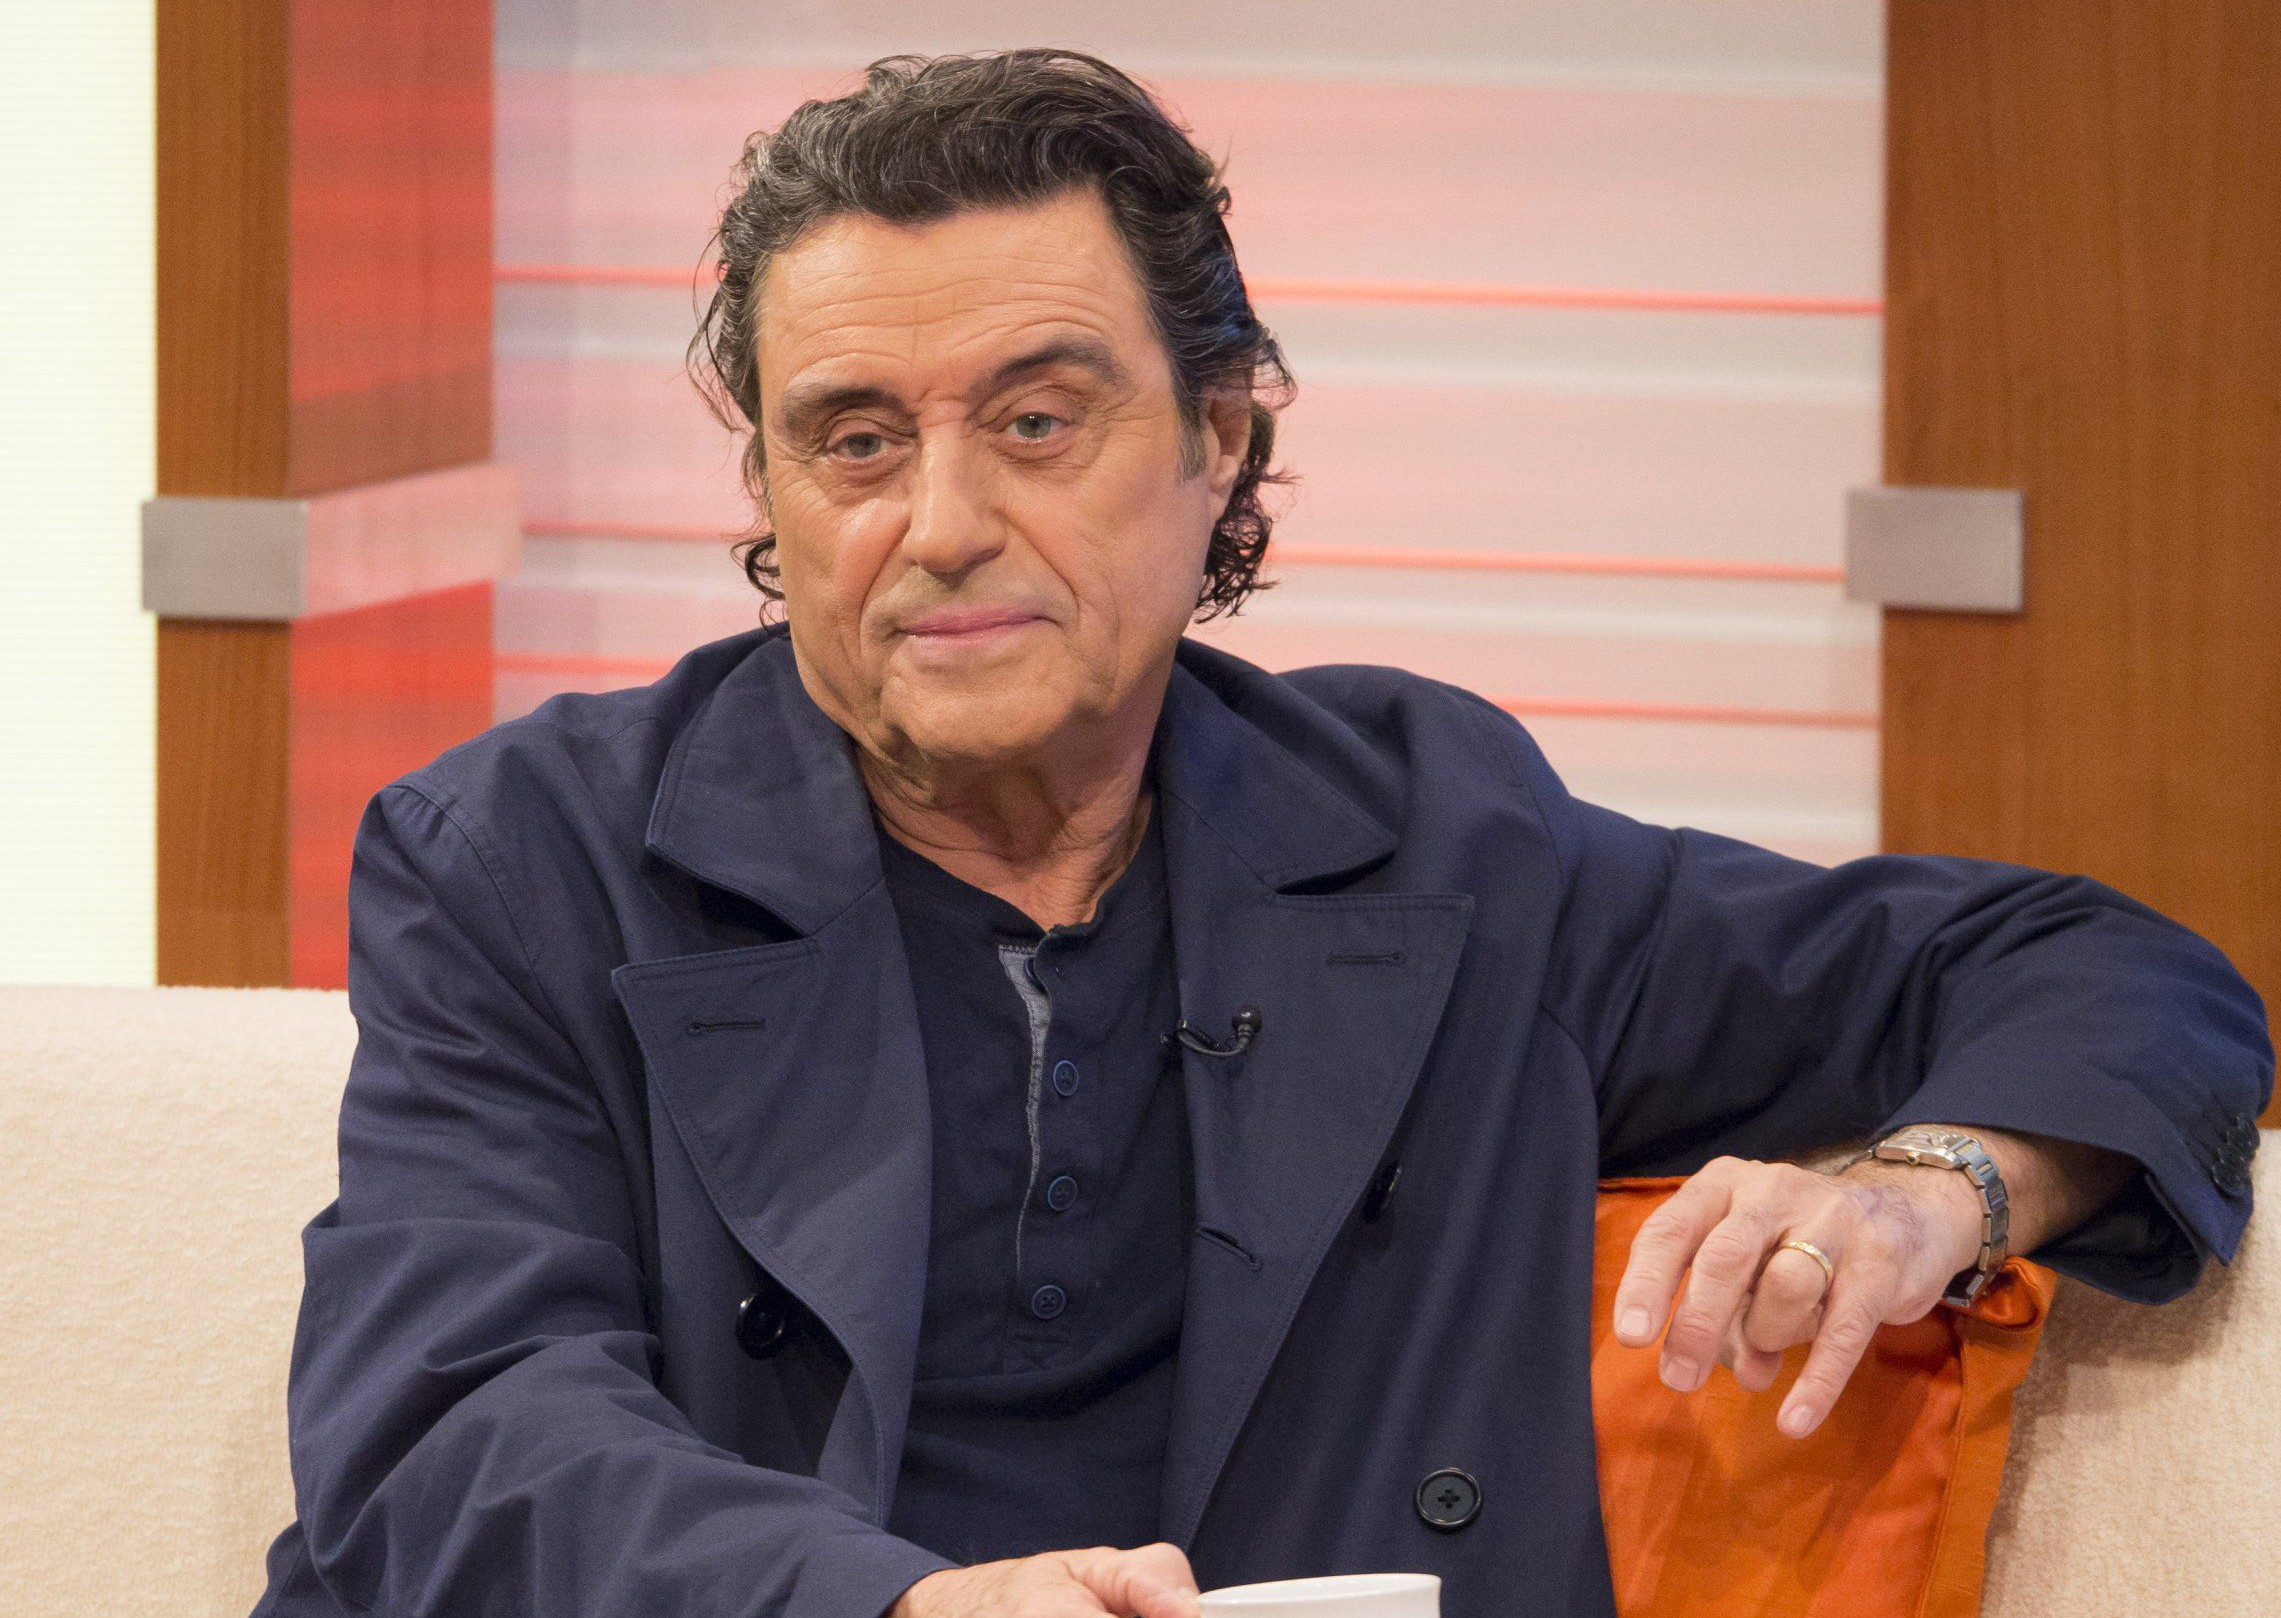 Ian McShane says Game of Thrones fans need to realise the show is 'just tits and dragons'